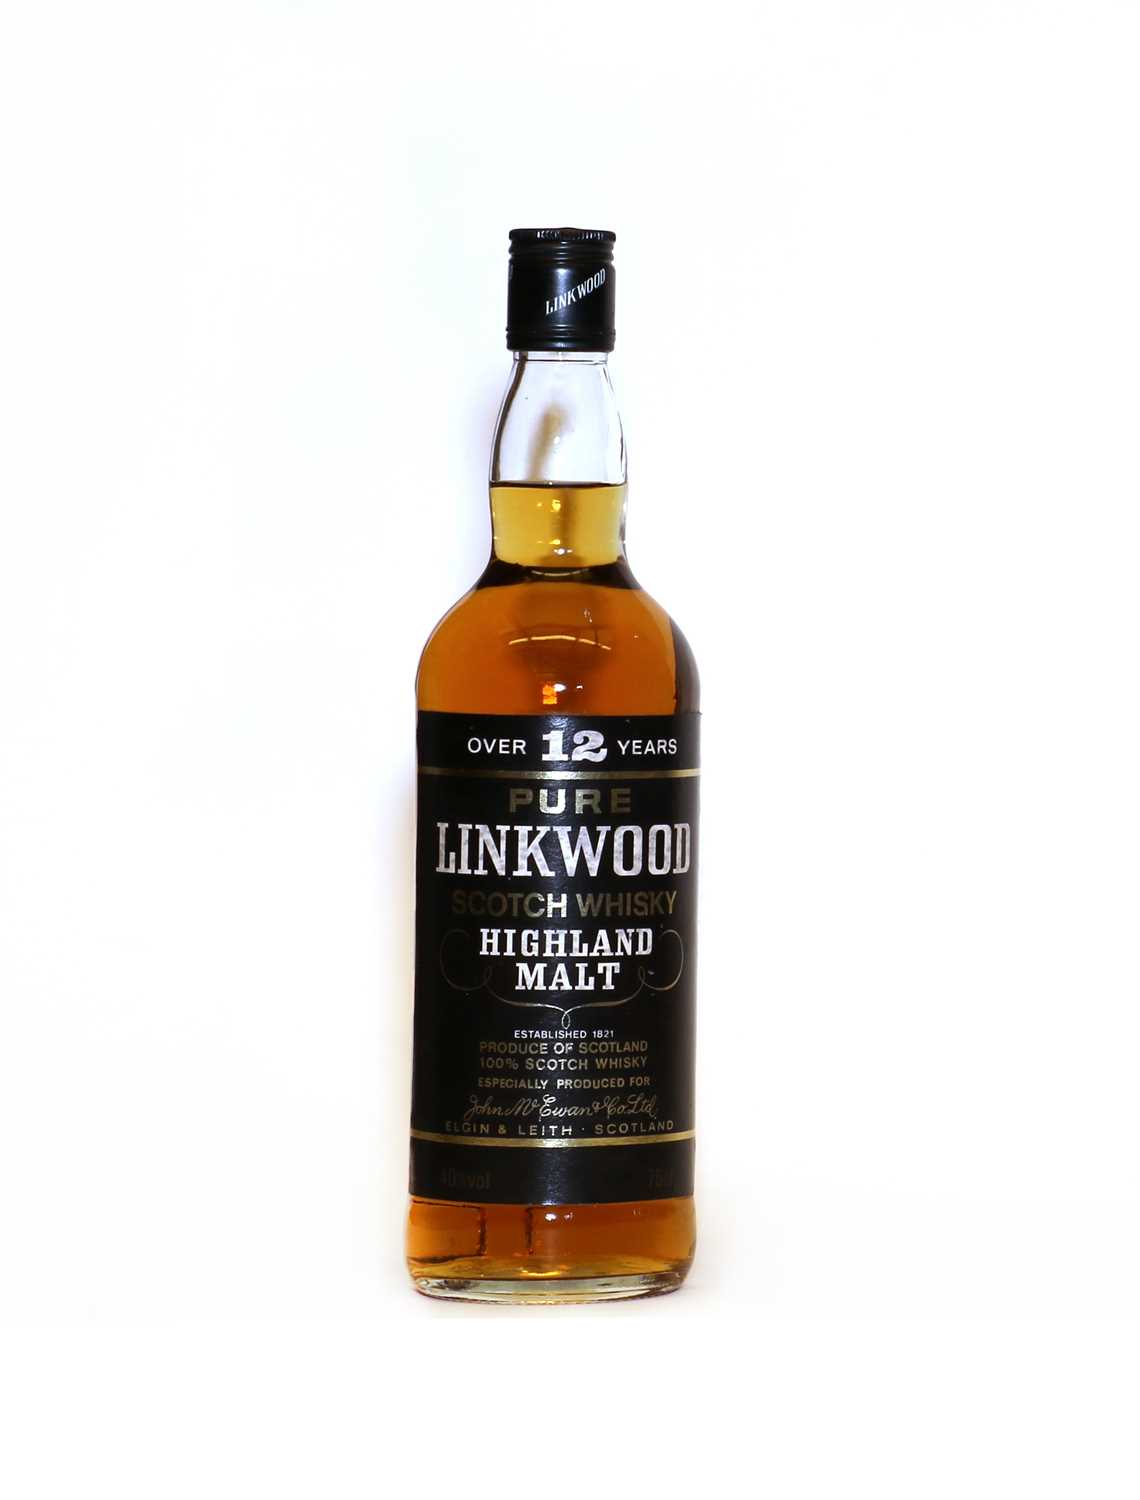 Linkwood, Pure Highland Malt Scotch Whisky, Over 12 Years, 1980s bottling, 40% vol, 75cl, one